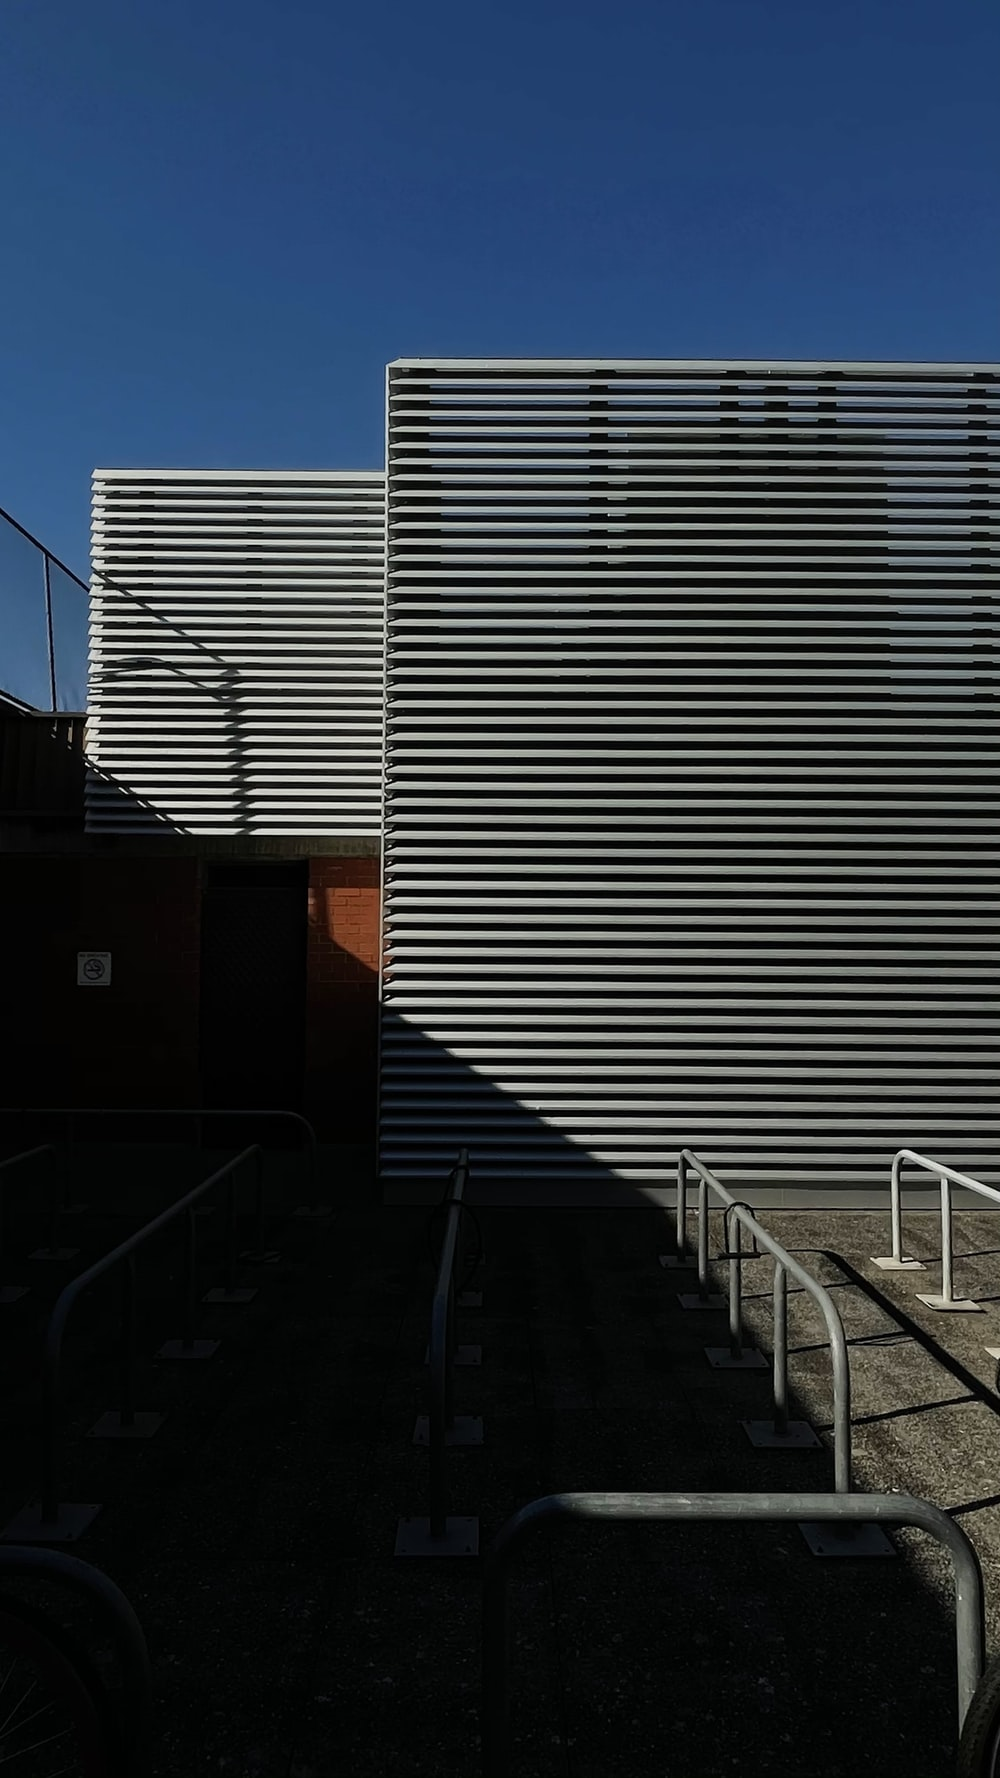 white metal railings near white and brown concrete building during daytime